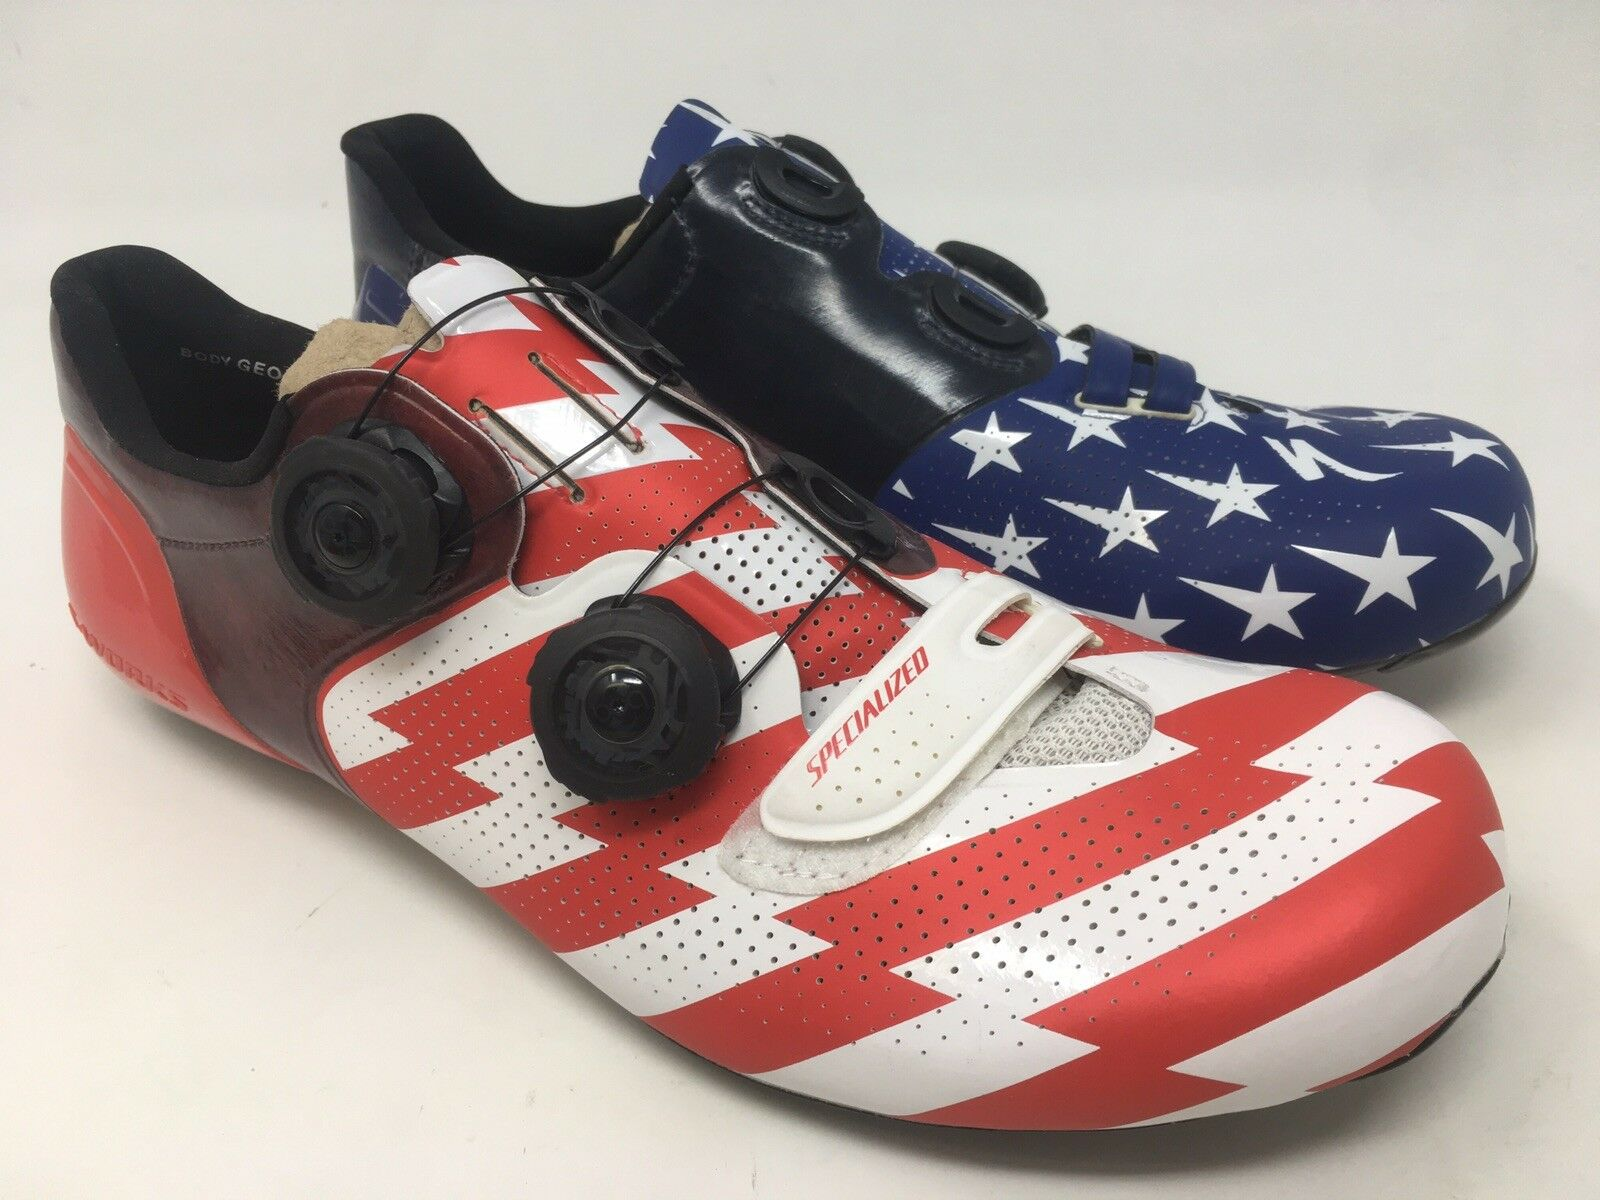 NEW LIMITED EDITION USA S-WORKS 6 Road FACT Carbon US 8.5 shoes BOA NIB